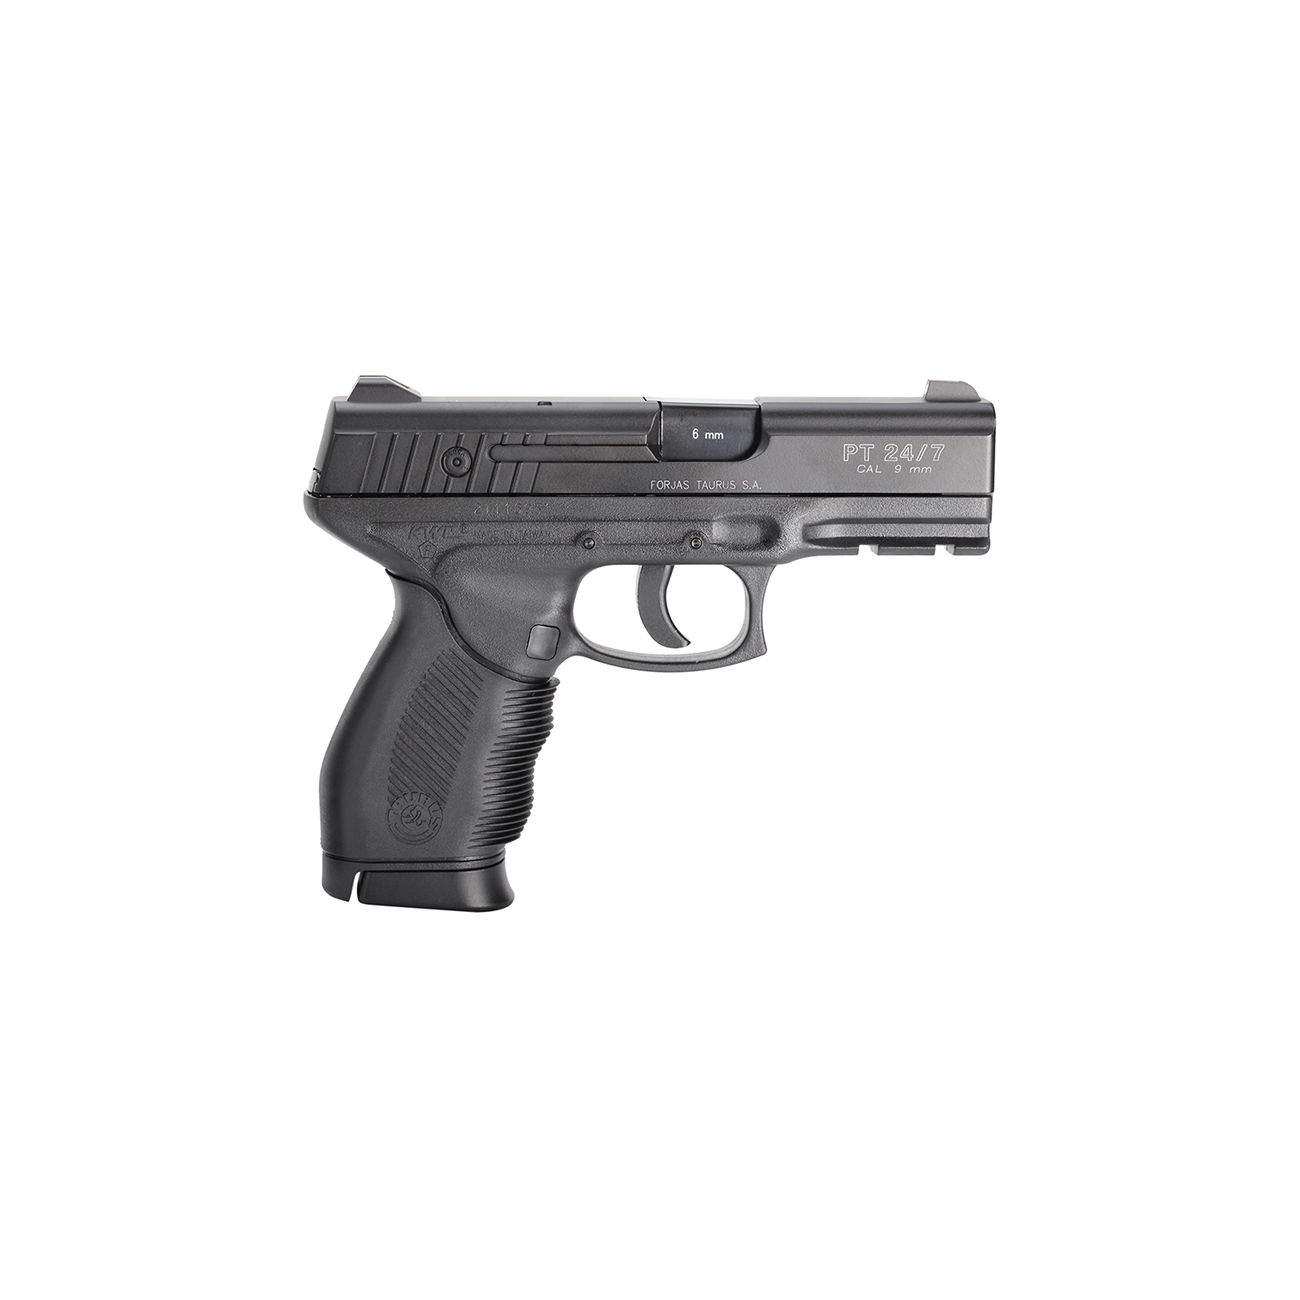 KWC Taurus PT 24/7 Softair mit Metallschlitten CO2 NBB 2